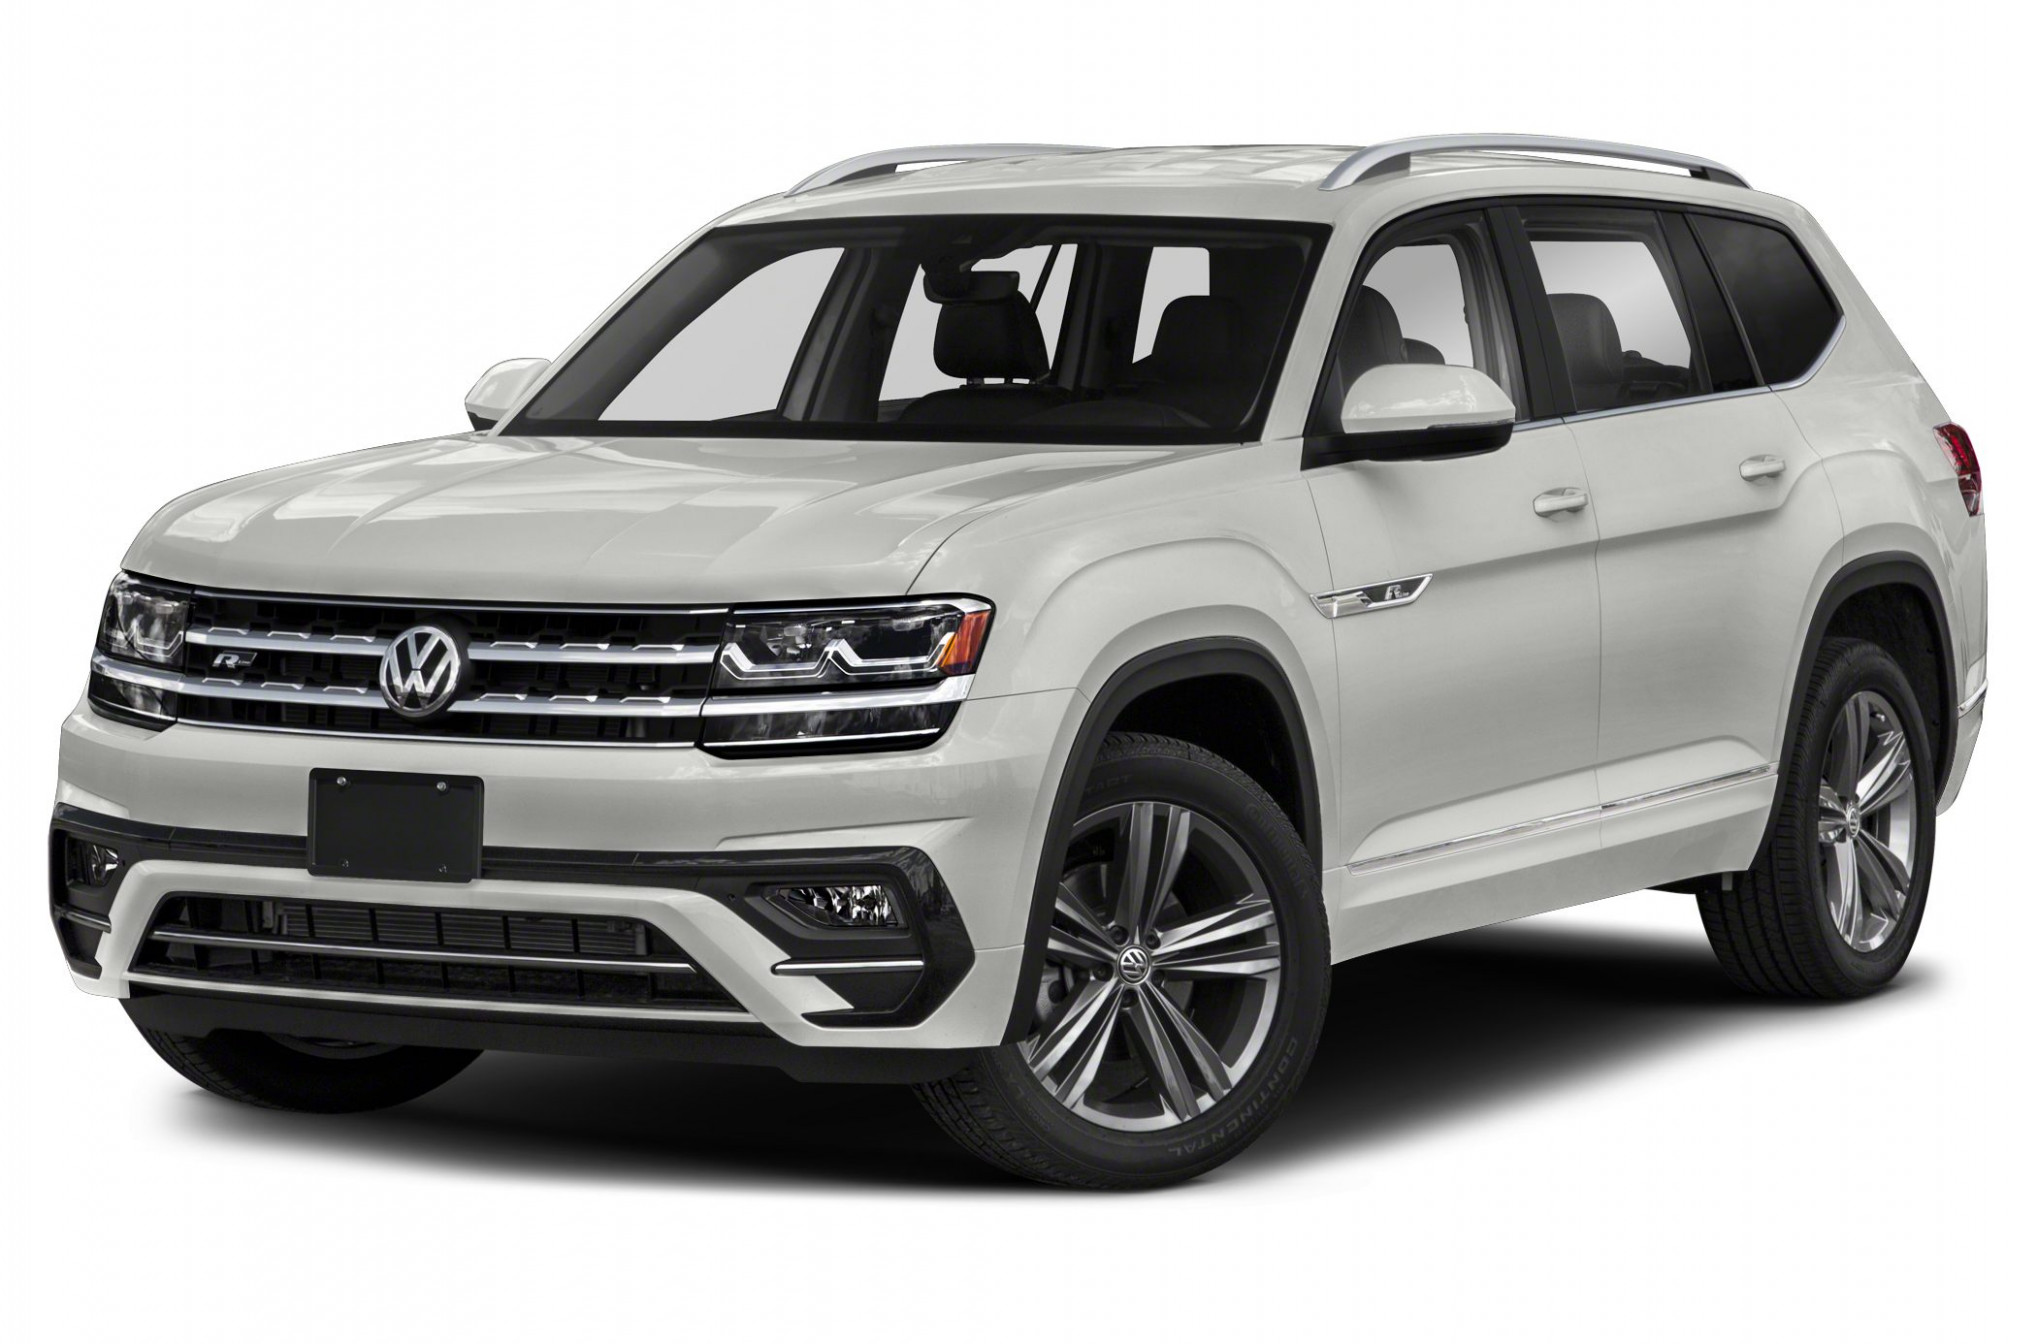 11 Volkswagen Atlas 11.11L V11 SEL R-Line 11dr All-wheel Drive 11MOTION  Pricing and Options